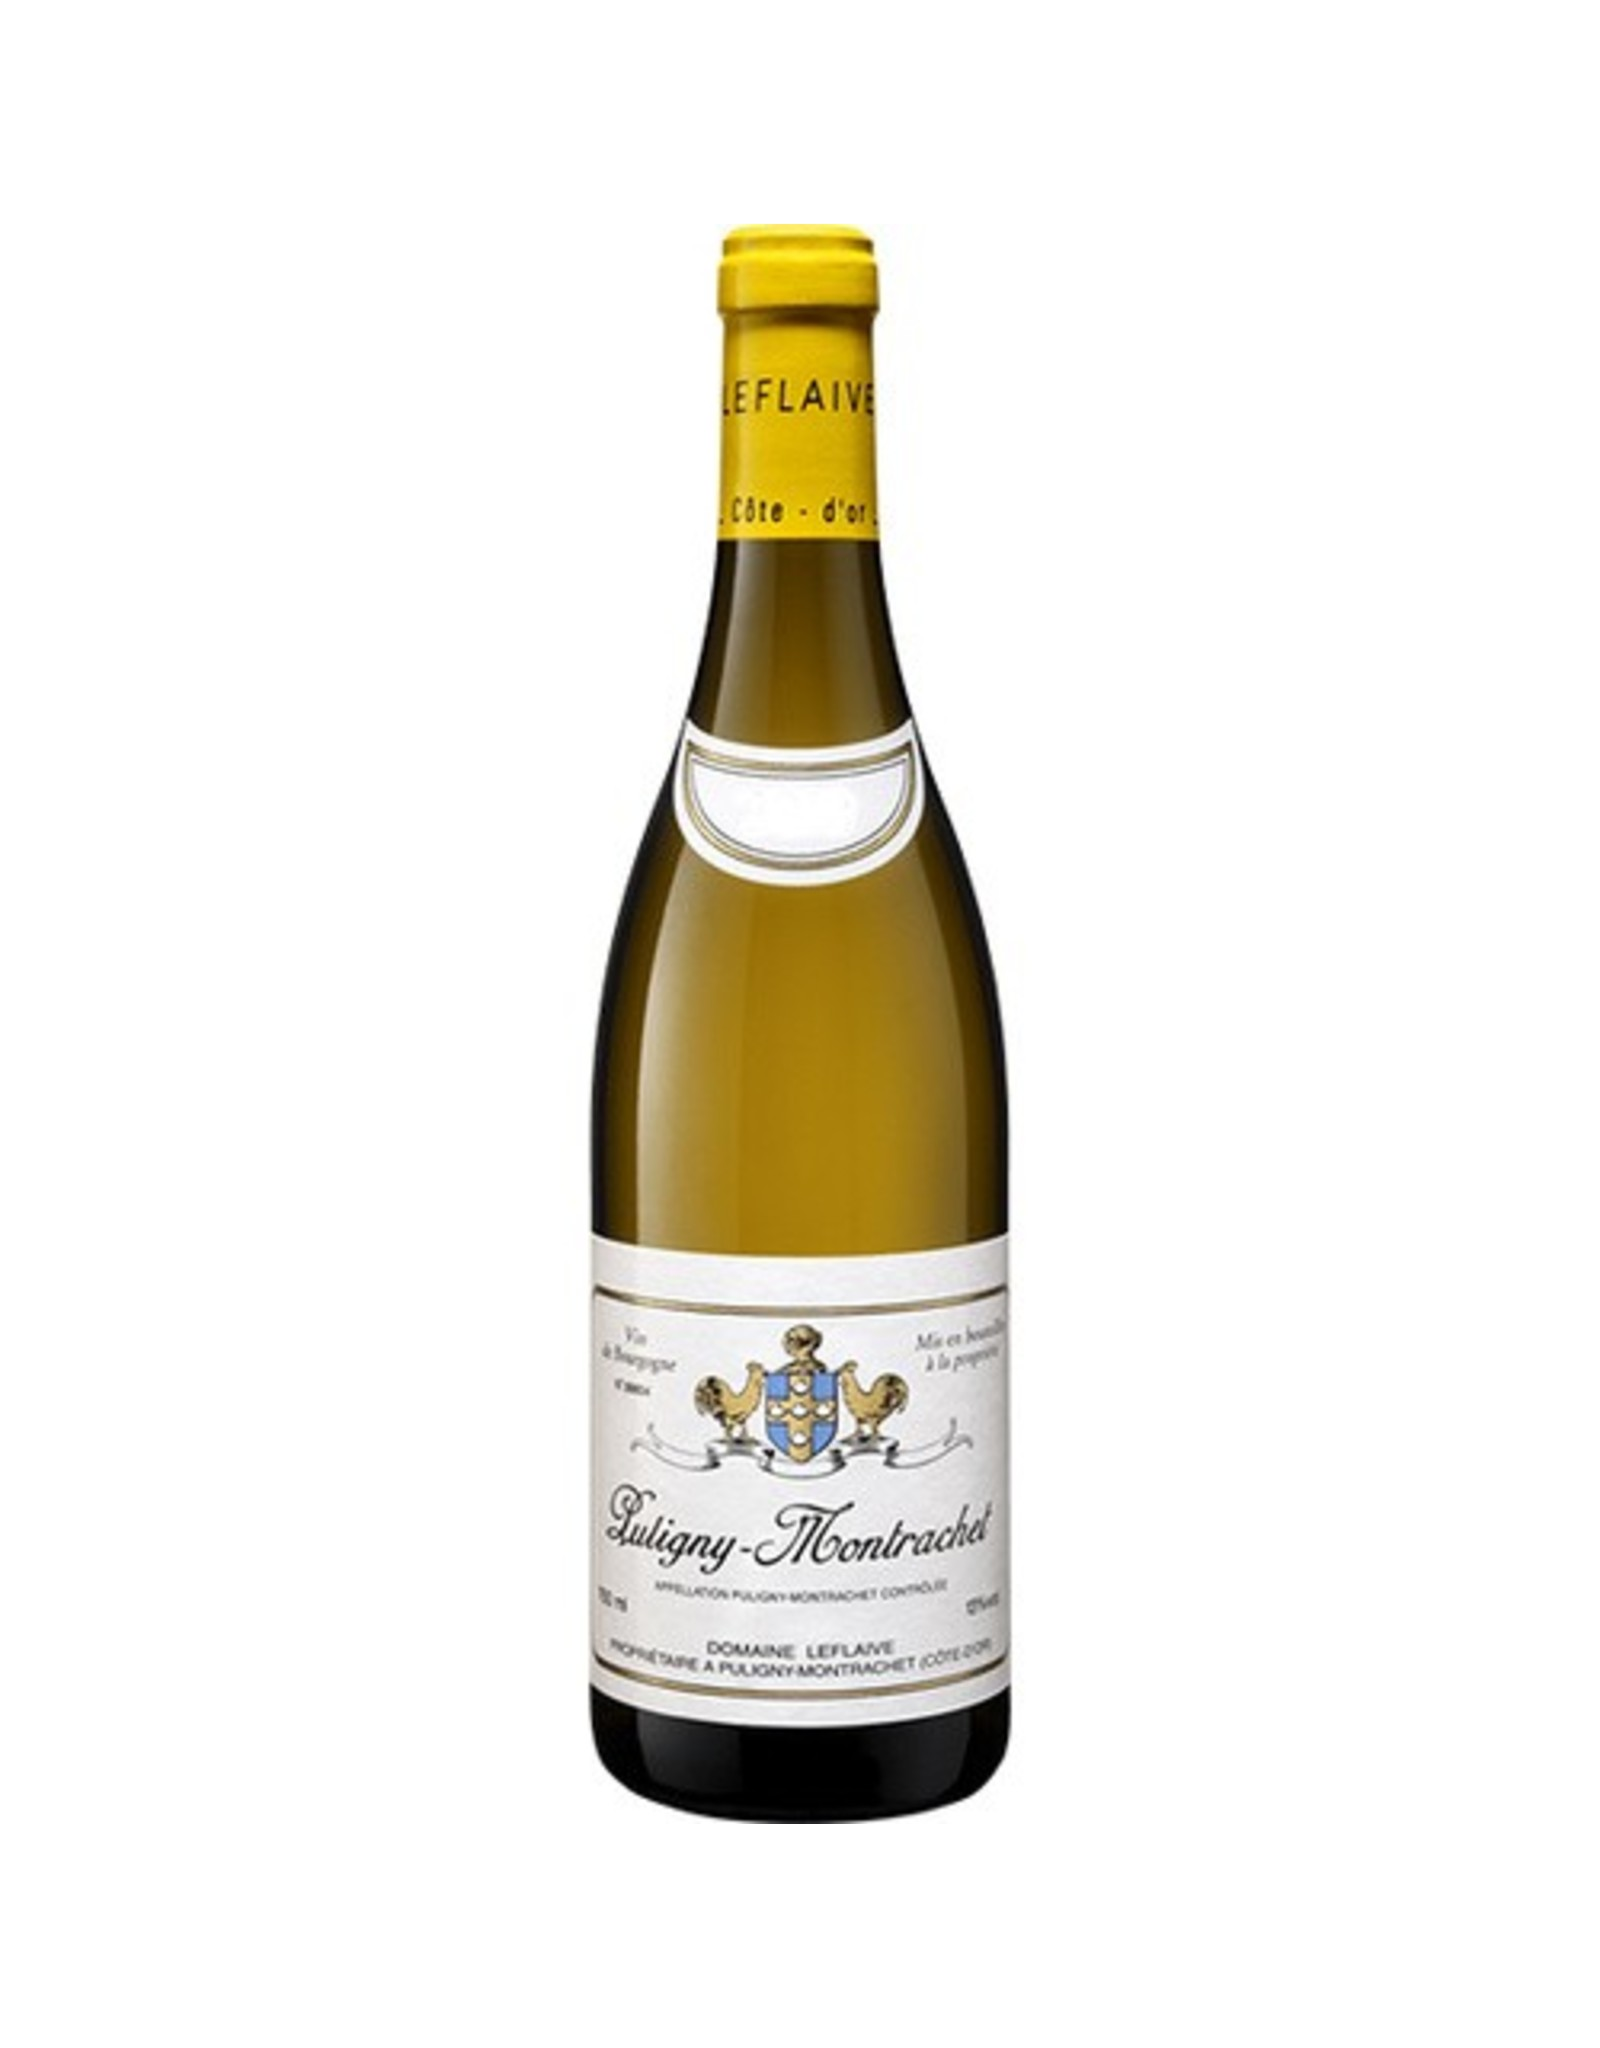 White Wine 2013, Domaine LeFlaive, Chardonnay, Puligny-Montrachet, Burgundy, France, 13% Alc, CT89, TW94